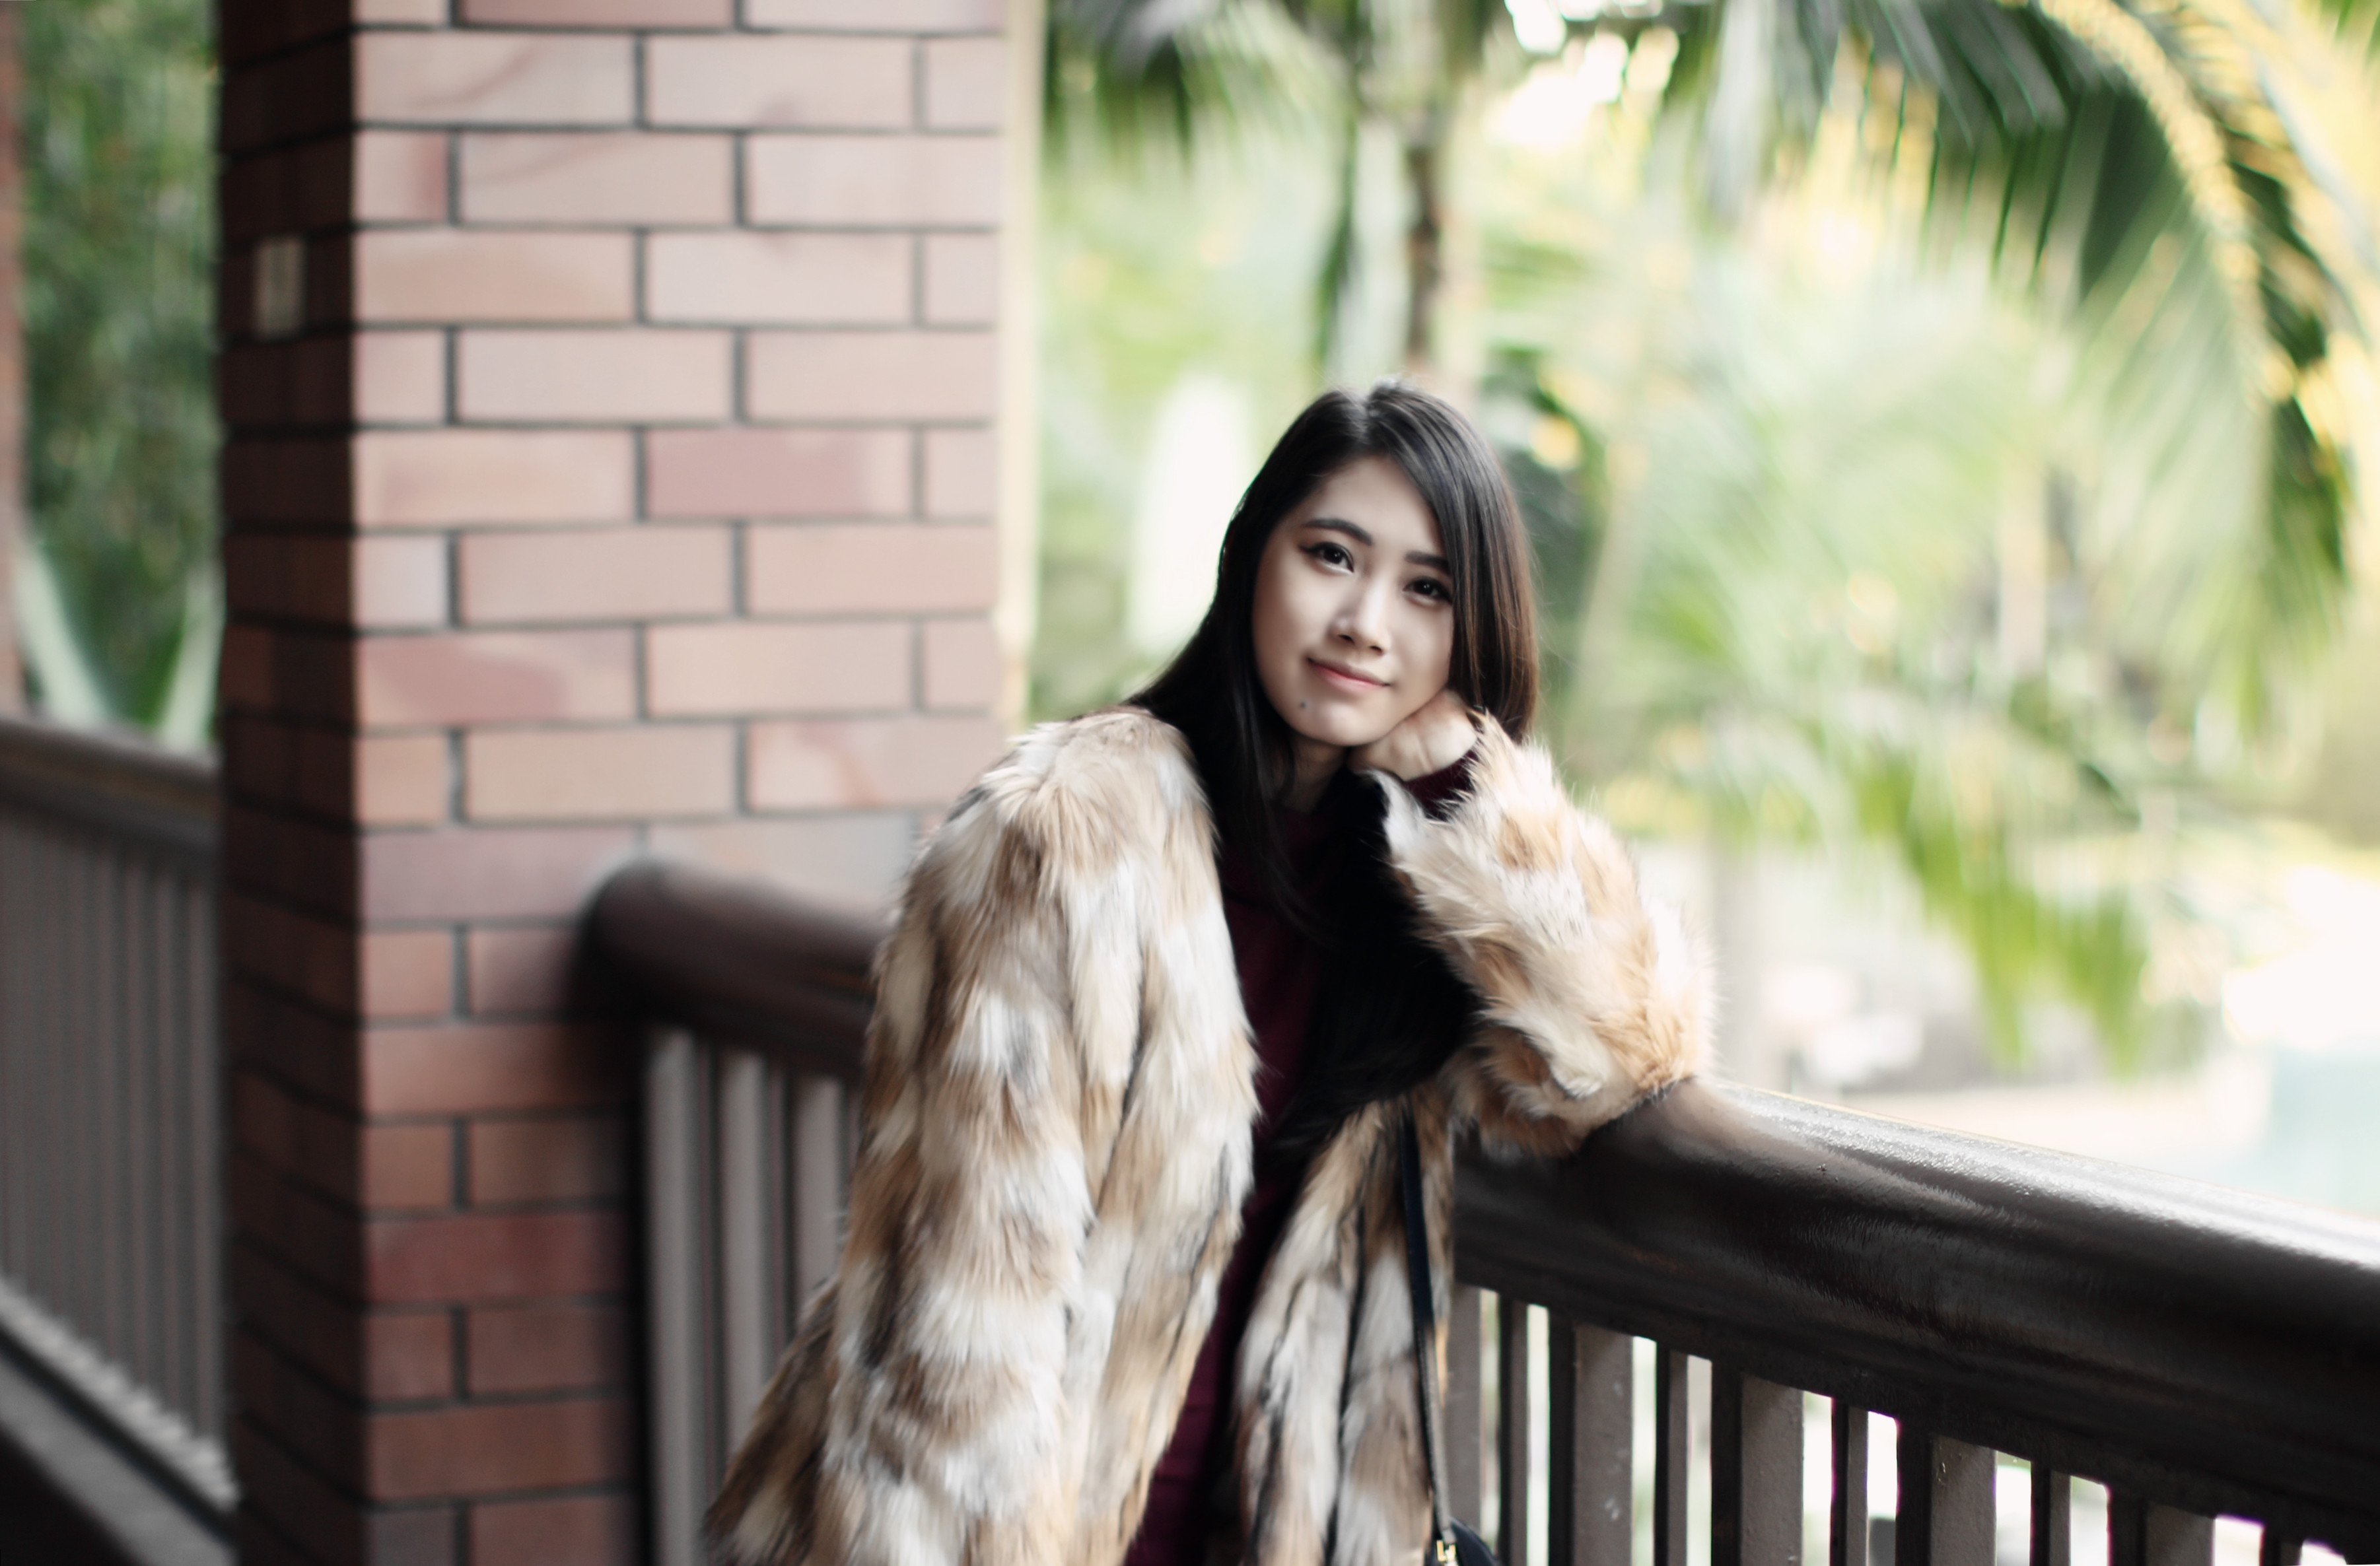 3770-ootd-fashion-style-outfitoftheday-wiwt-vincecamuto-fauxfur-otkboots-fallfashion-forever21-f21-hollister-koreanfashion-sponsored-elizabeeetht-clothestoyouuu